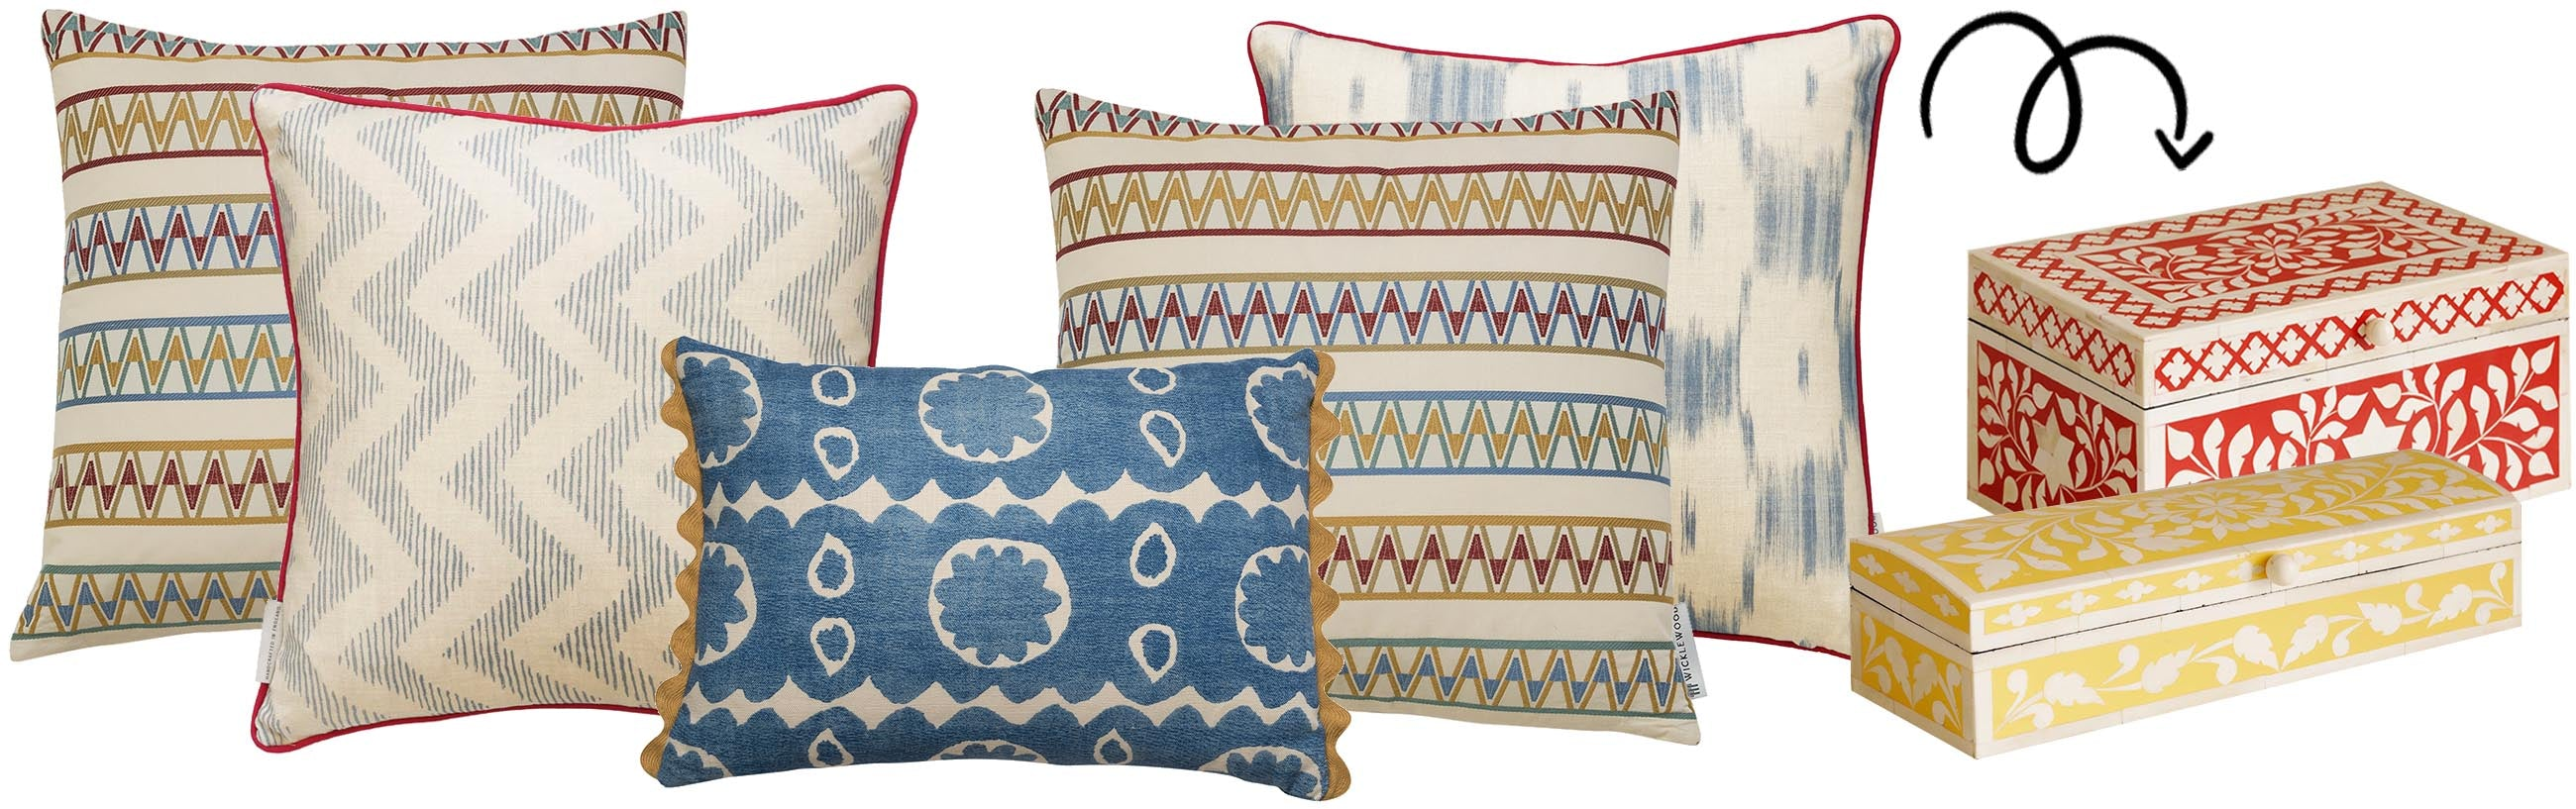 Wicklewood's top festive cushions combos, including a blue and red colour schemed, helping to inspire you to decorate your home differently this Holliday season.